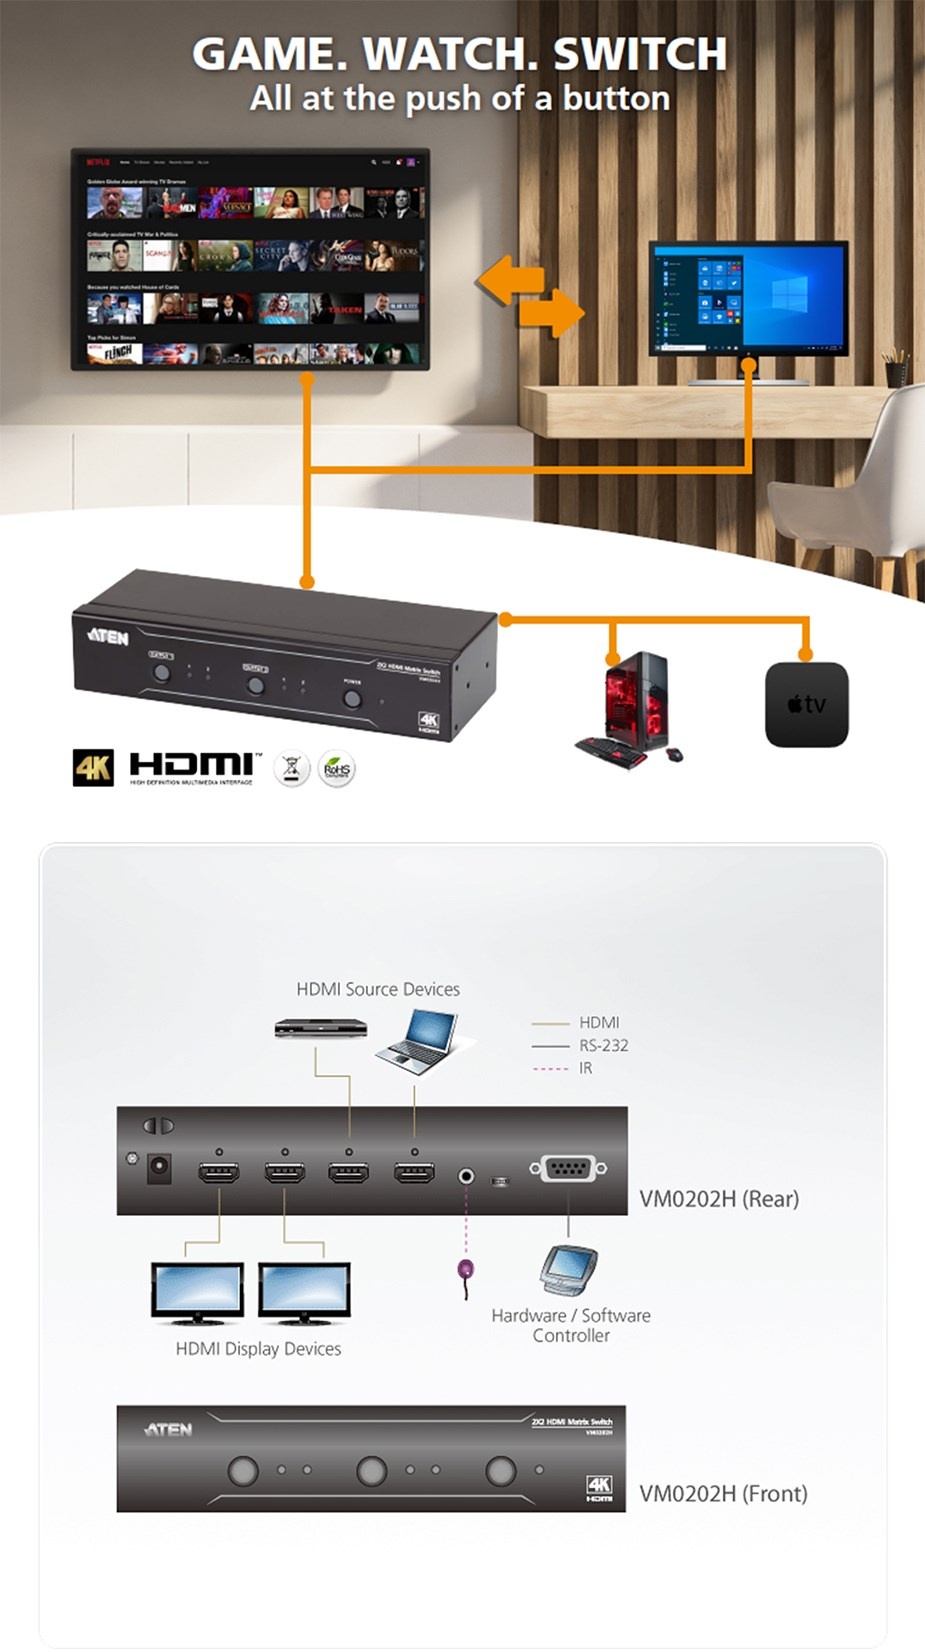 aten_vm0202hatu_2x2_4k_hdmi_matrix_switch_ac05060_4.jpg